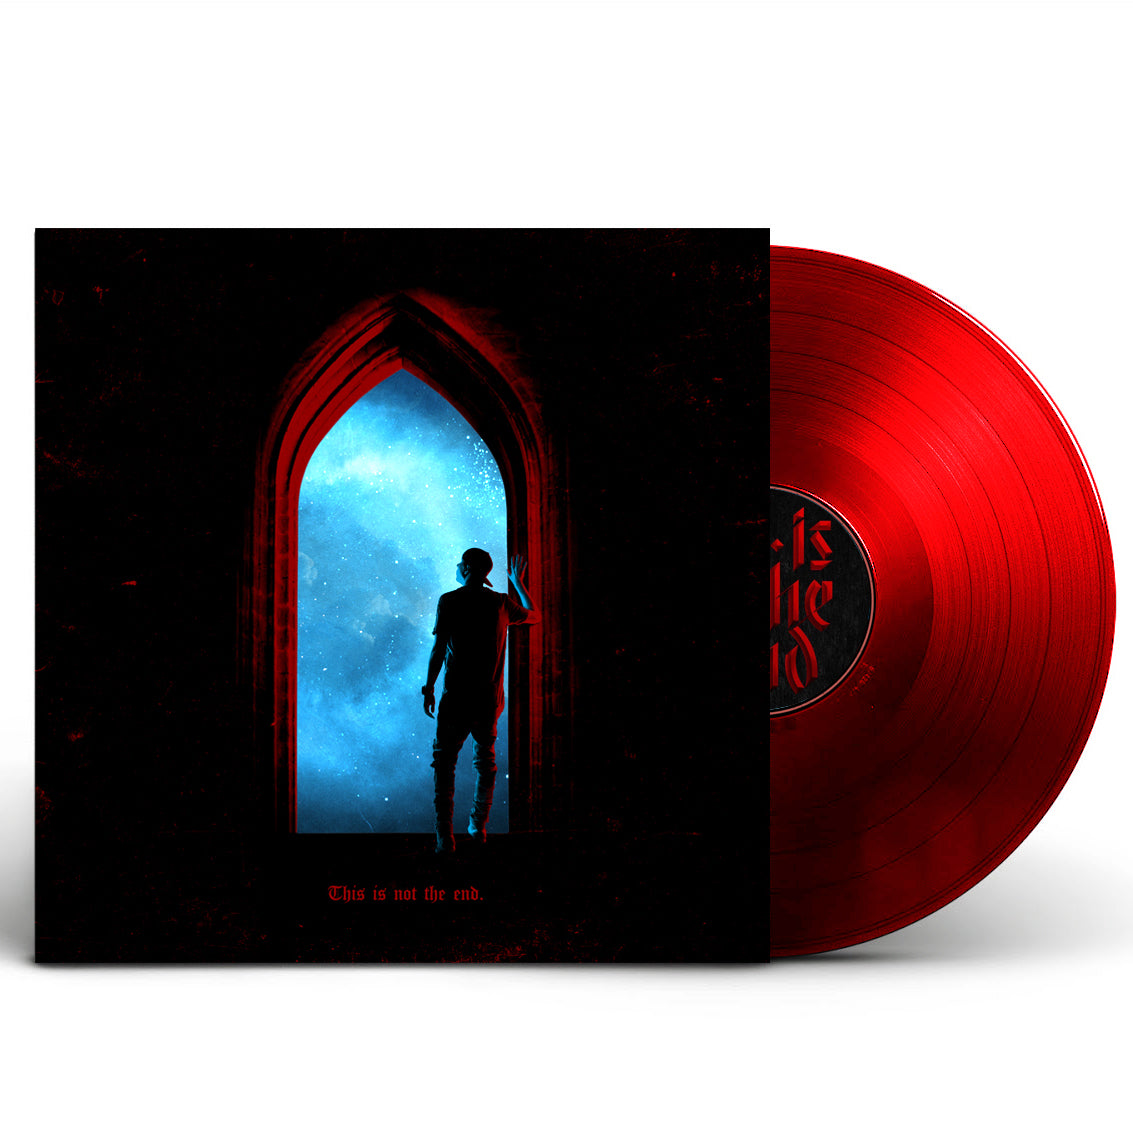 This Is Not The End Vinyl (Limited Edition)